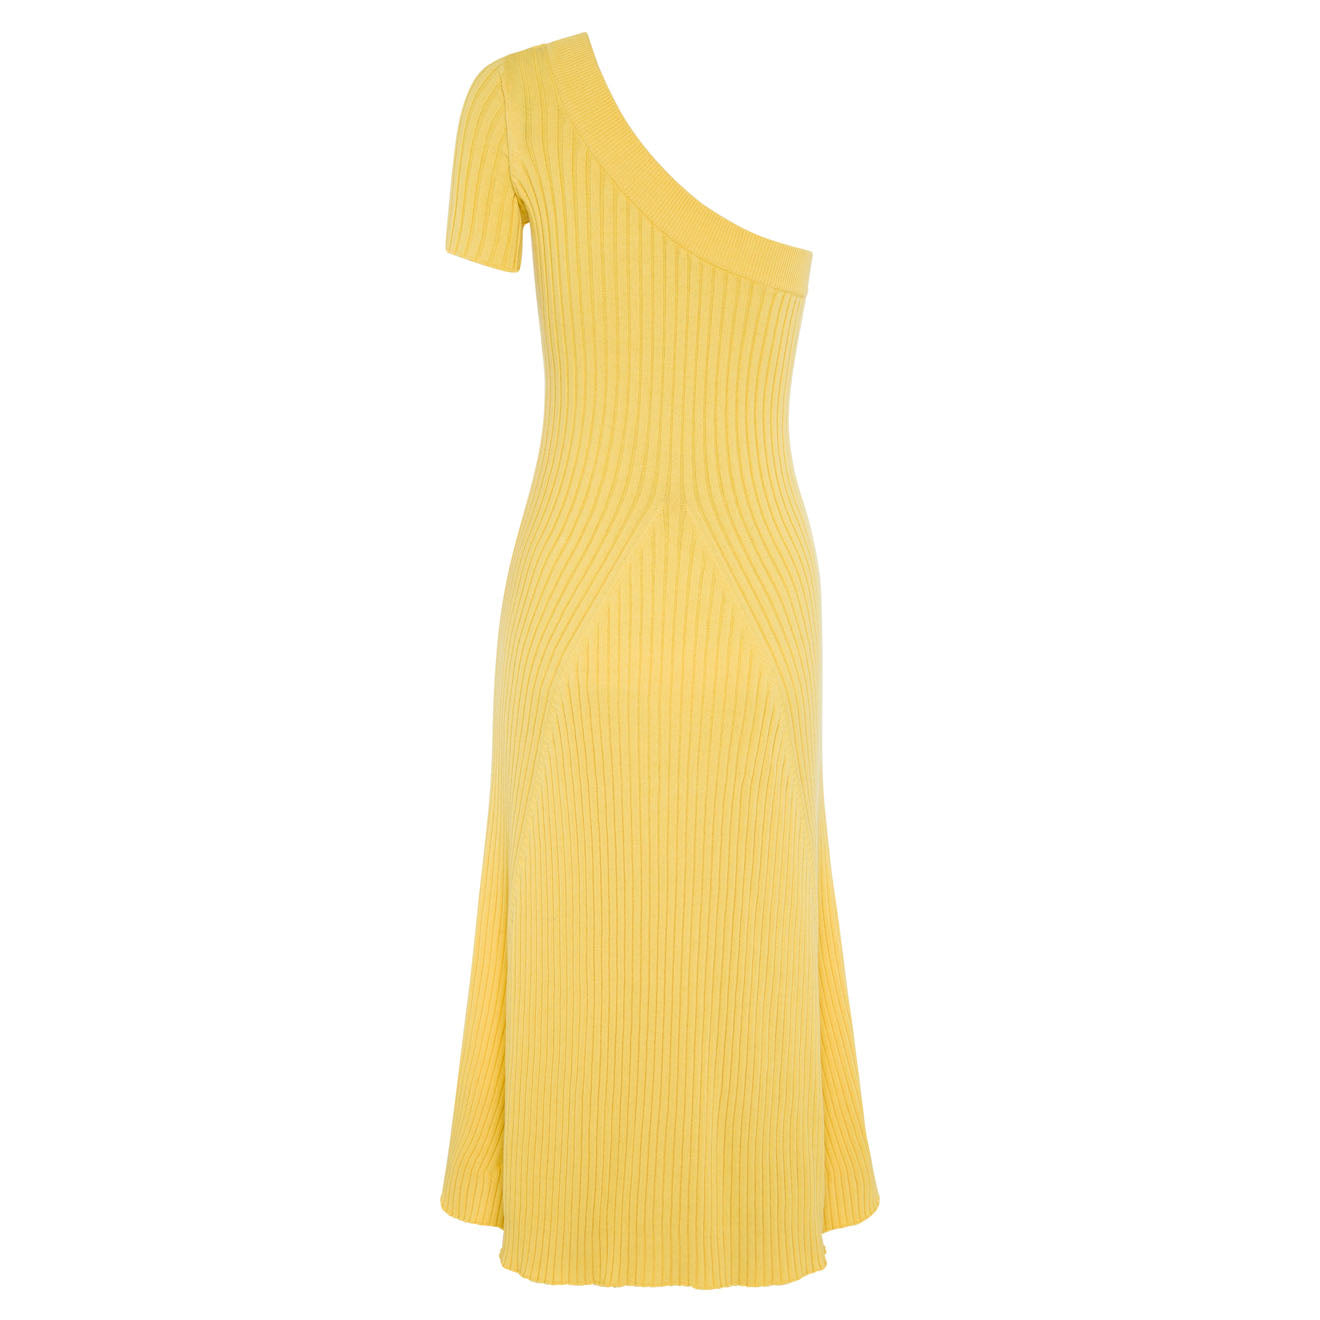 FELIX Dress (YELLOW)